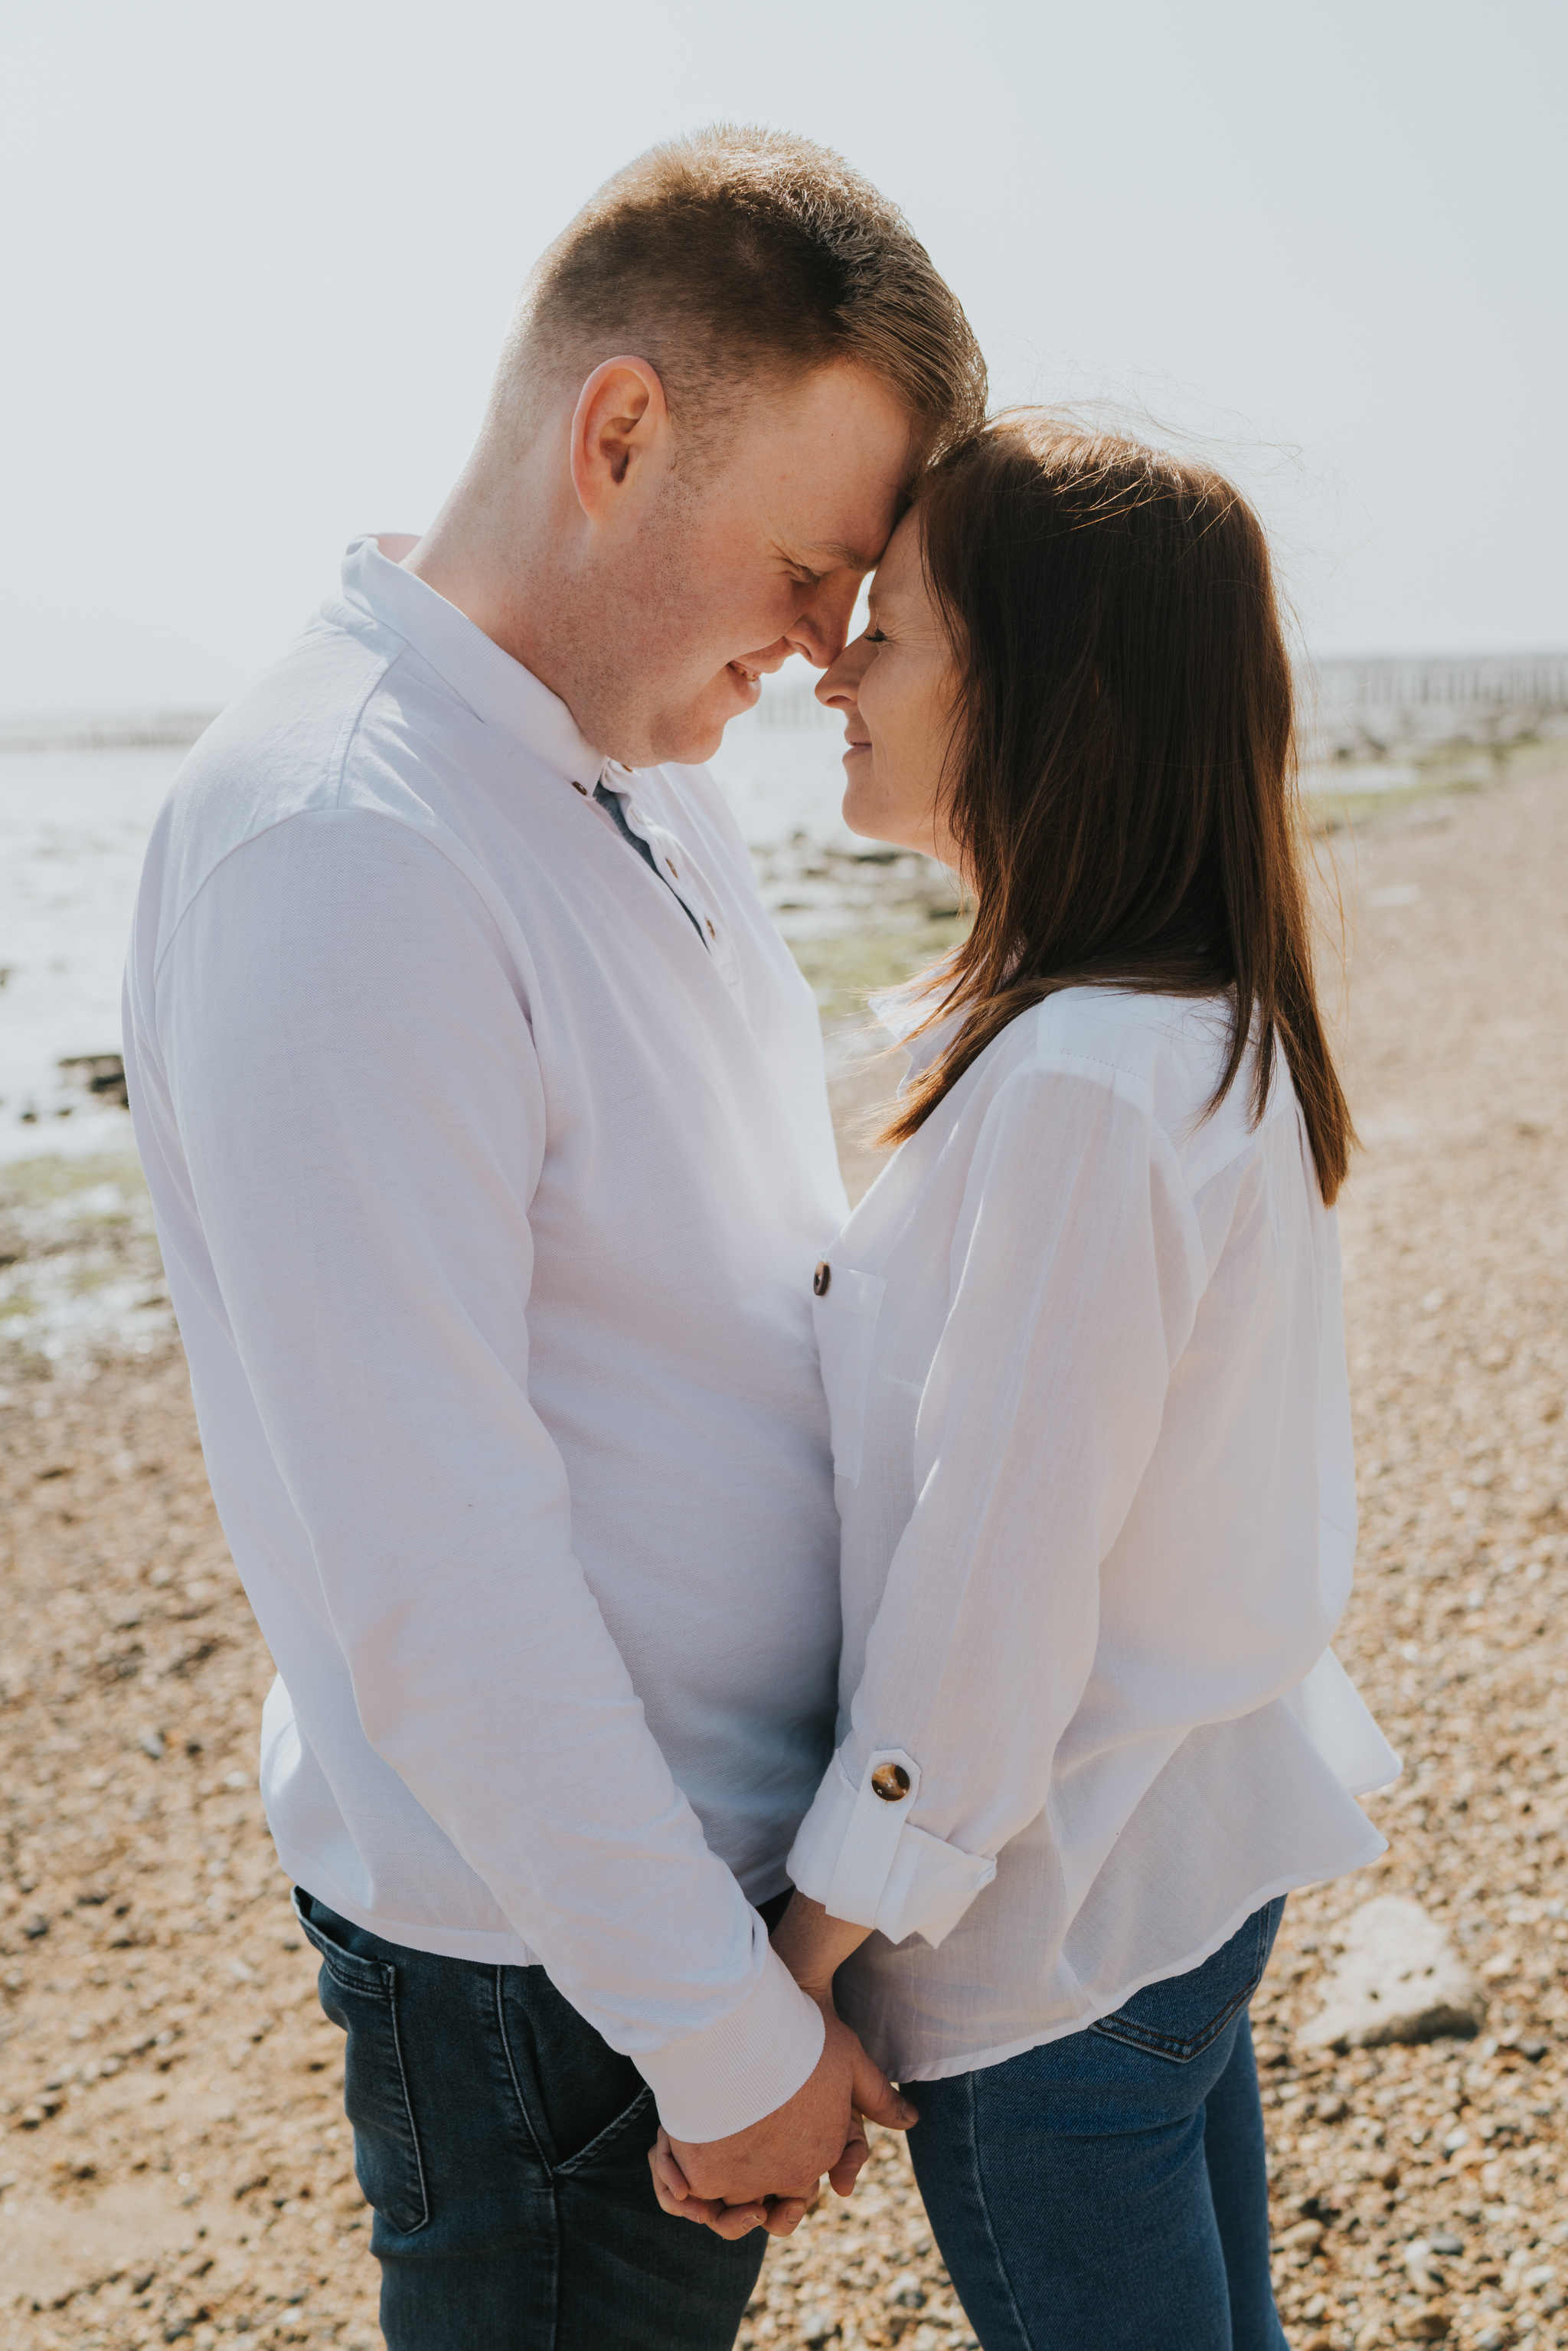 ruse-family-cudmore-grove-beach-family-session-grace-elizabeth-colchester-essex-alternative-wedding-lifestyle-photographer-essex-suffolk-devon-21.jpg